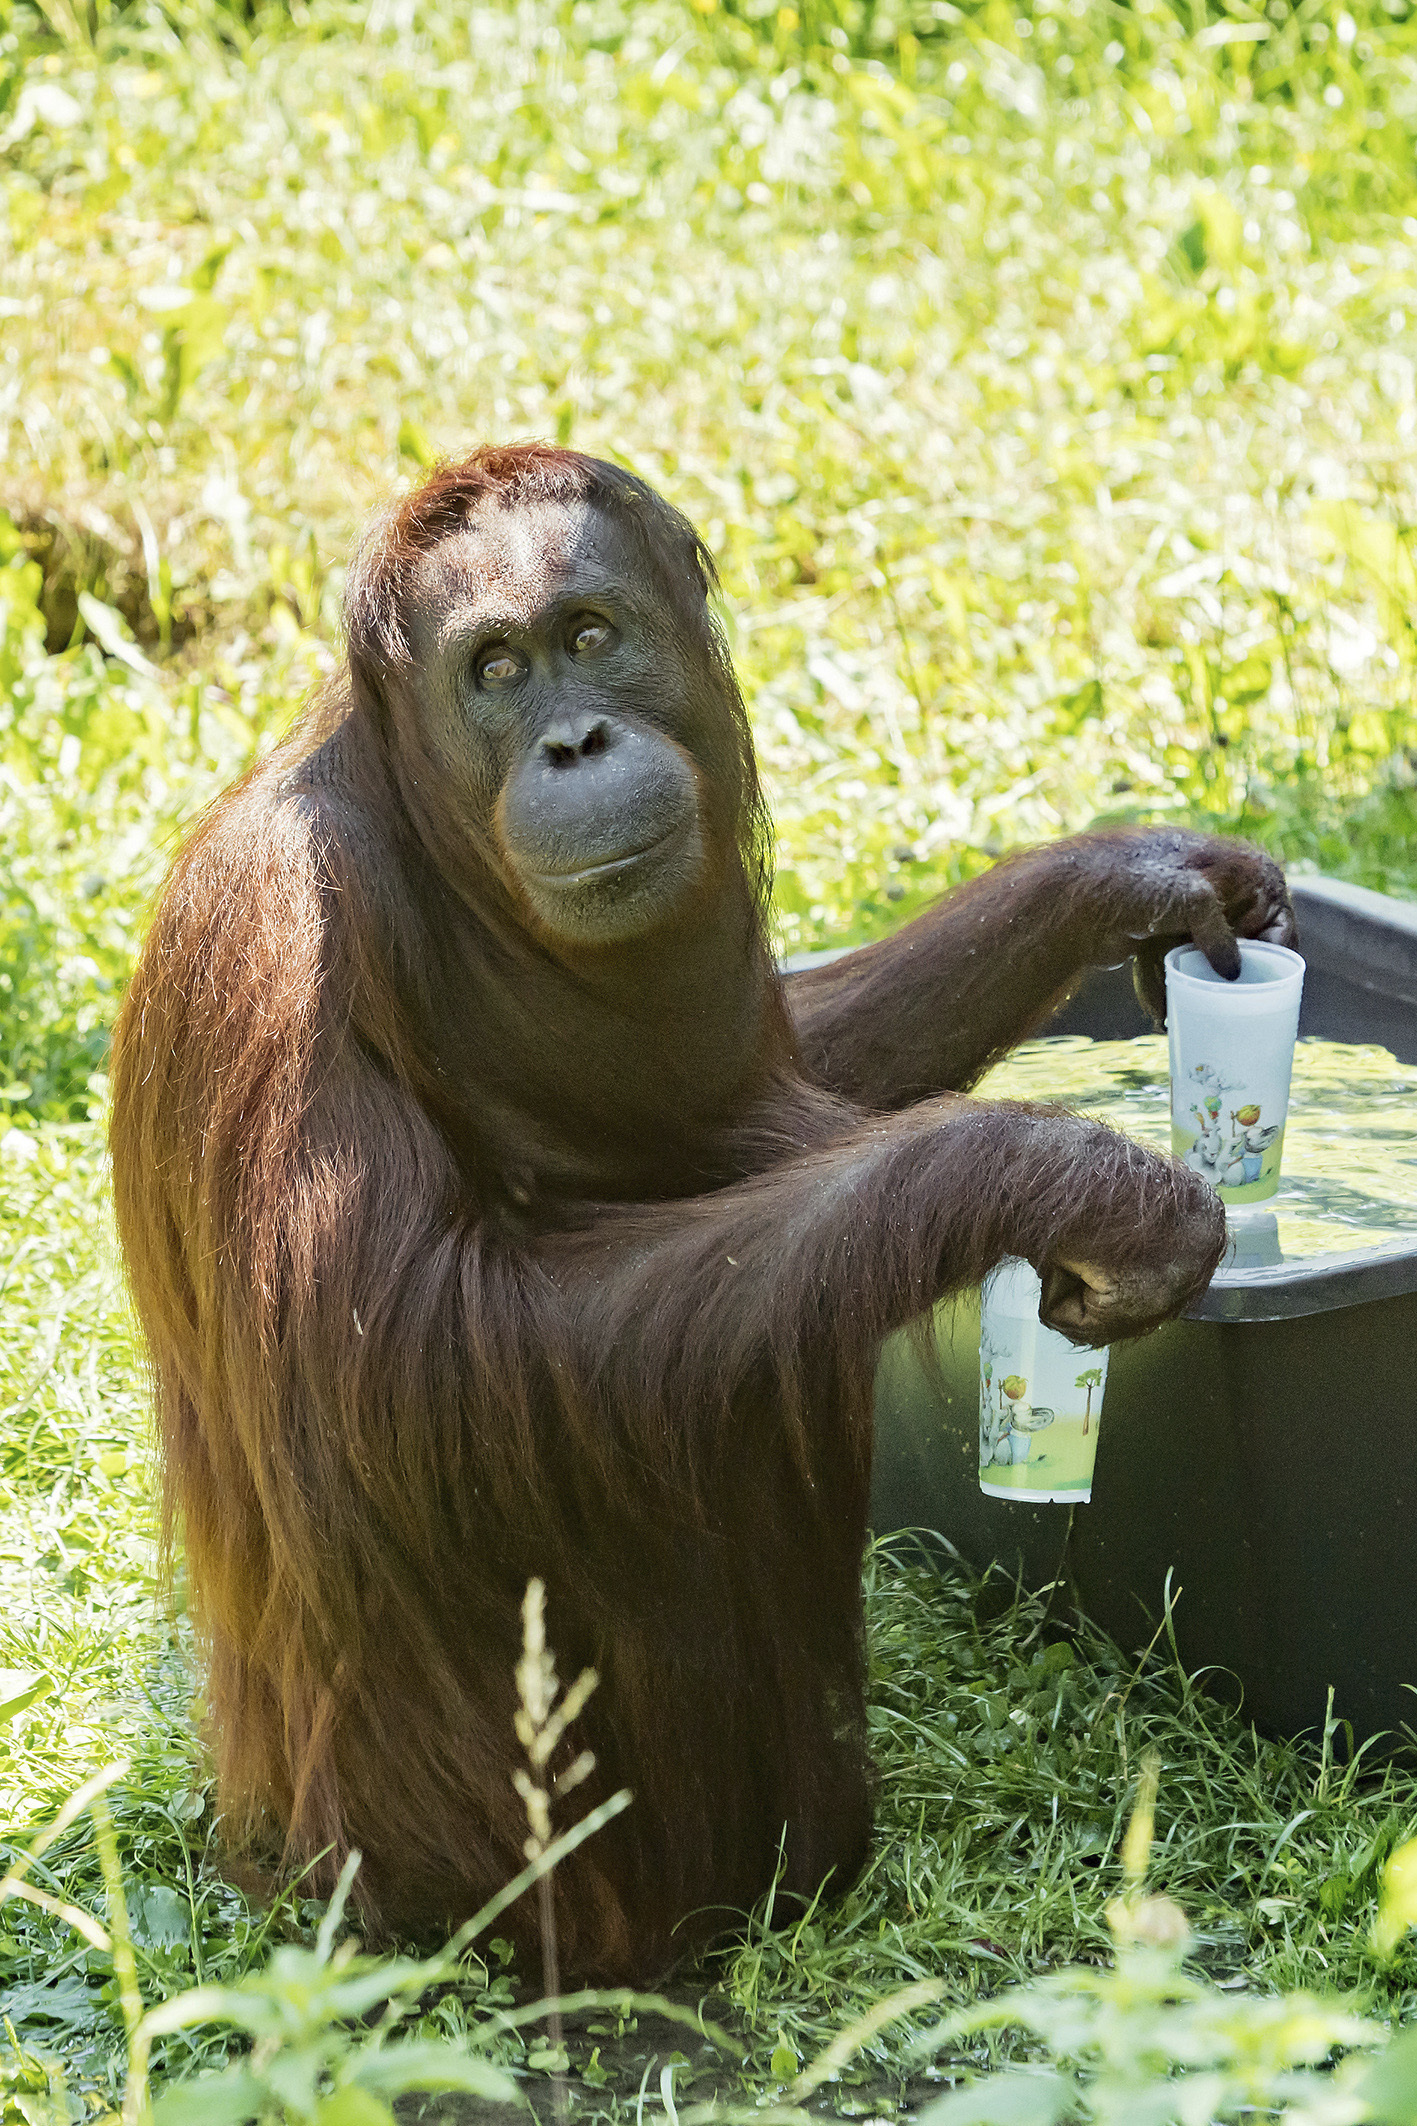 A handout picture of an orangutan filling his cups with water at the zoo Schoenbrunn in Vienna, Austria